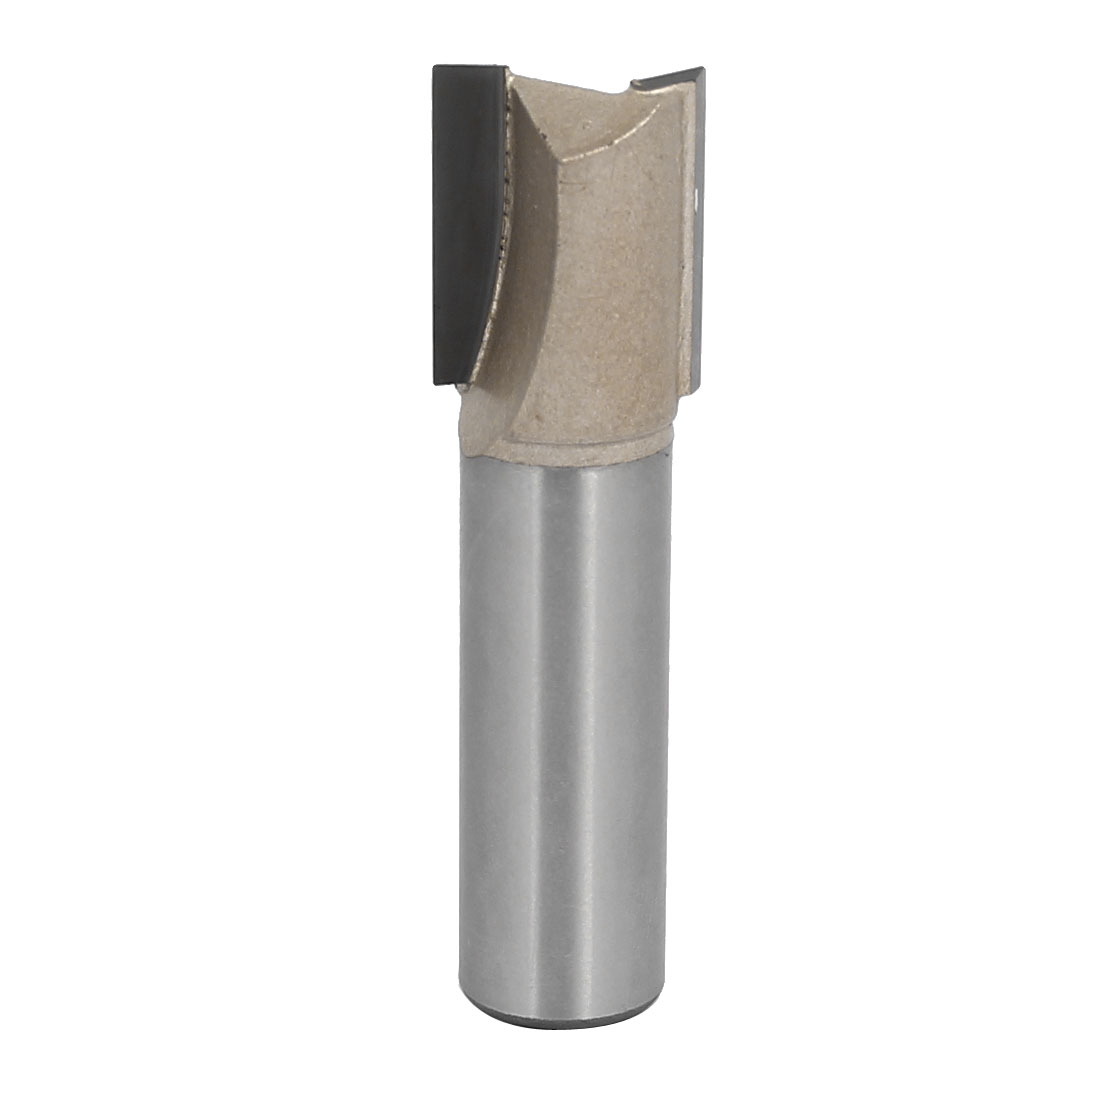 "5/8"" Dia by 20mm Depth Double Flute Carbide Tip Straight Router Bit, 1/2"" Shank"